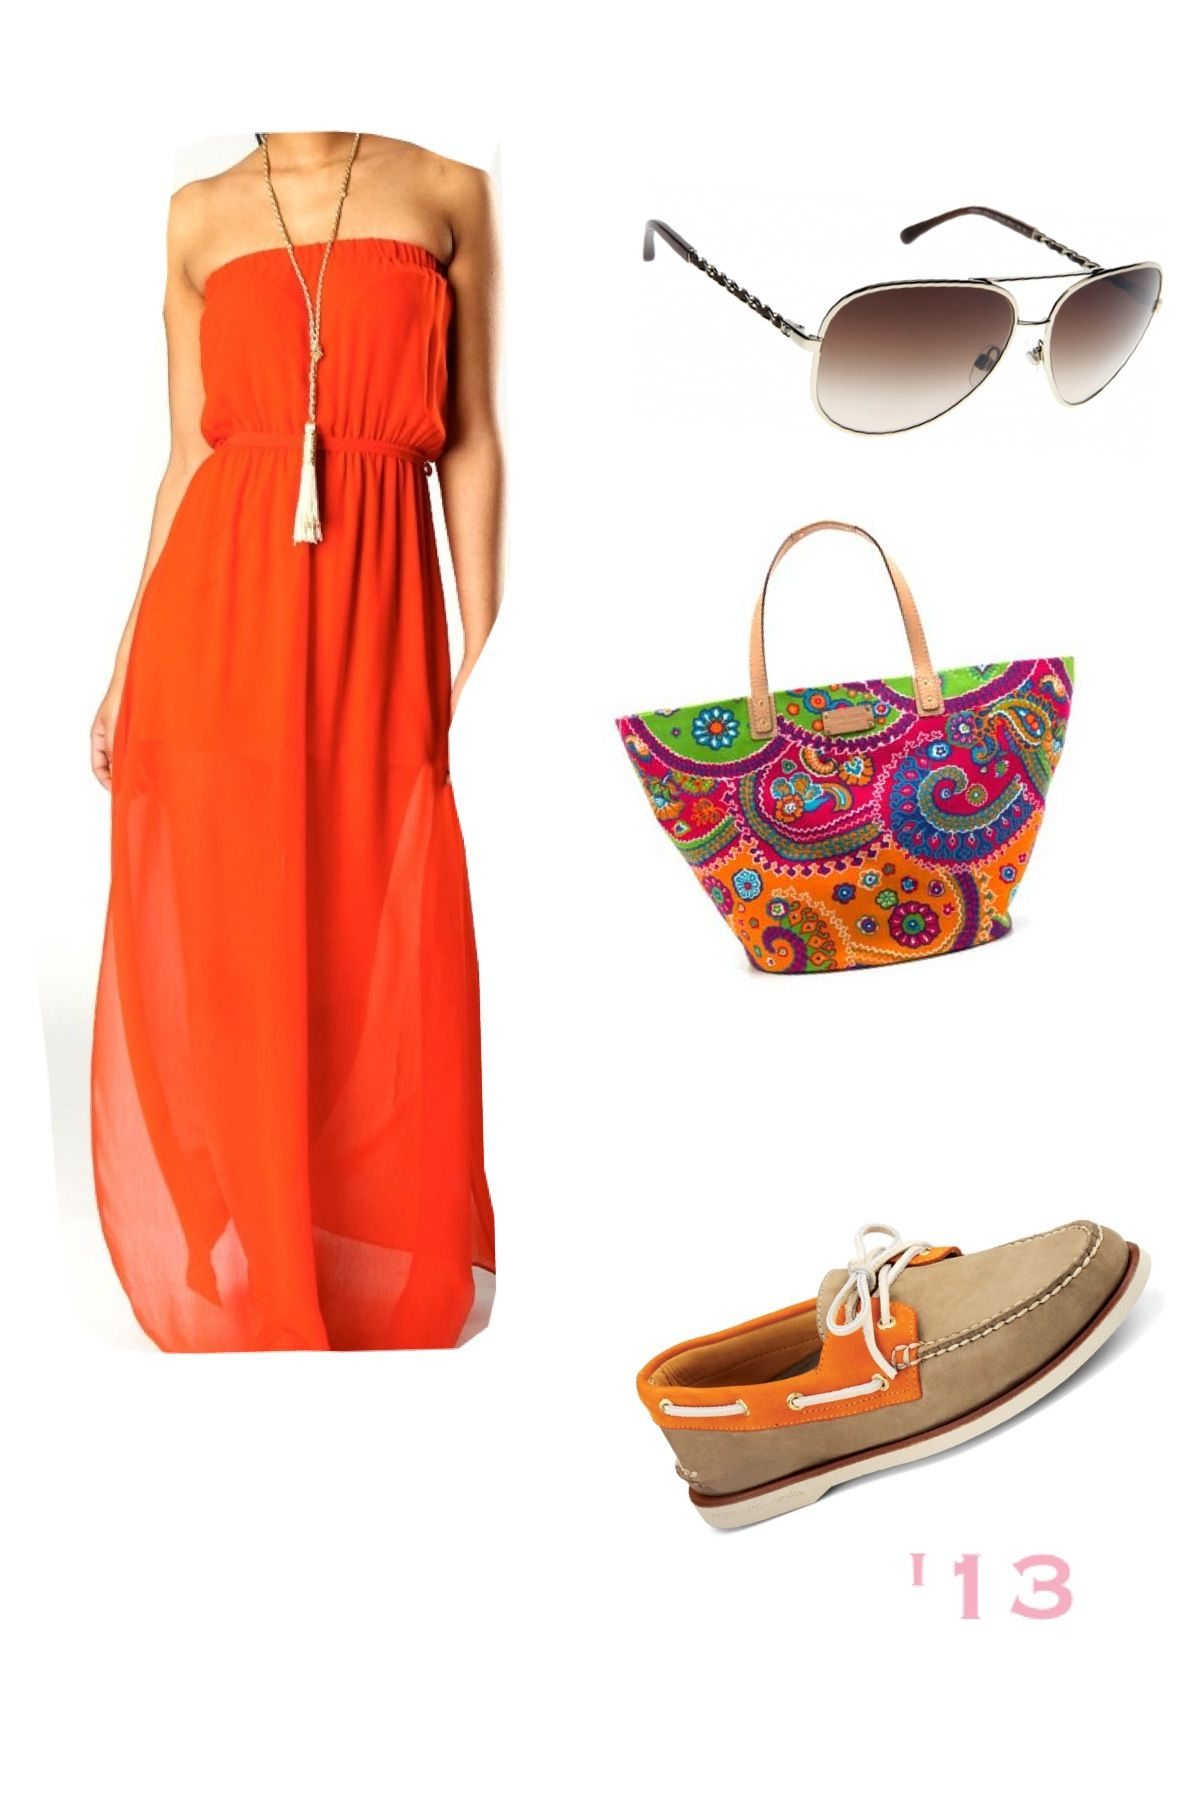 dfa8e9d65e Cute orange maxi dress